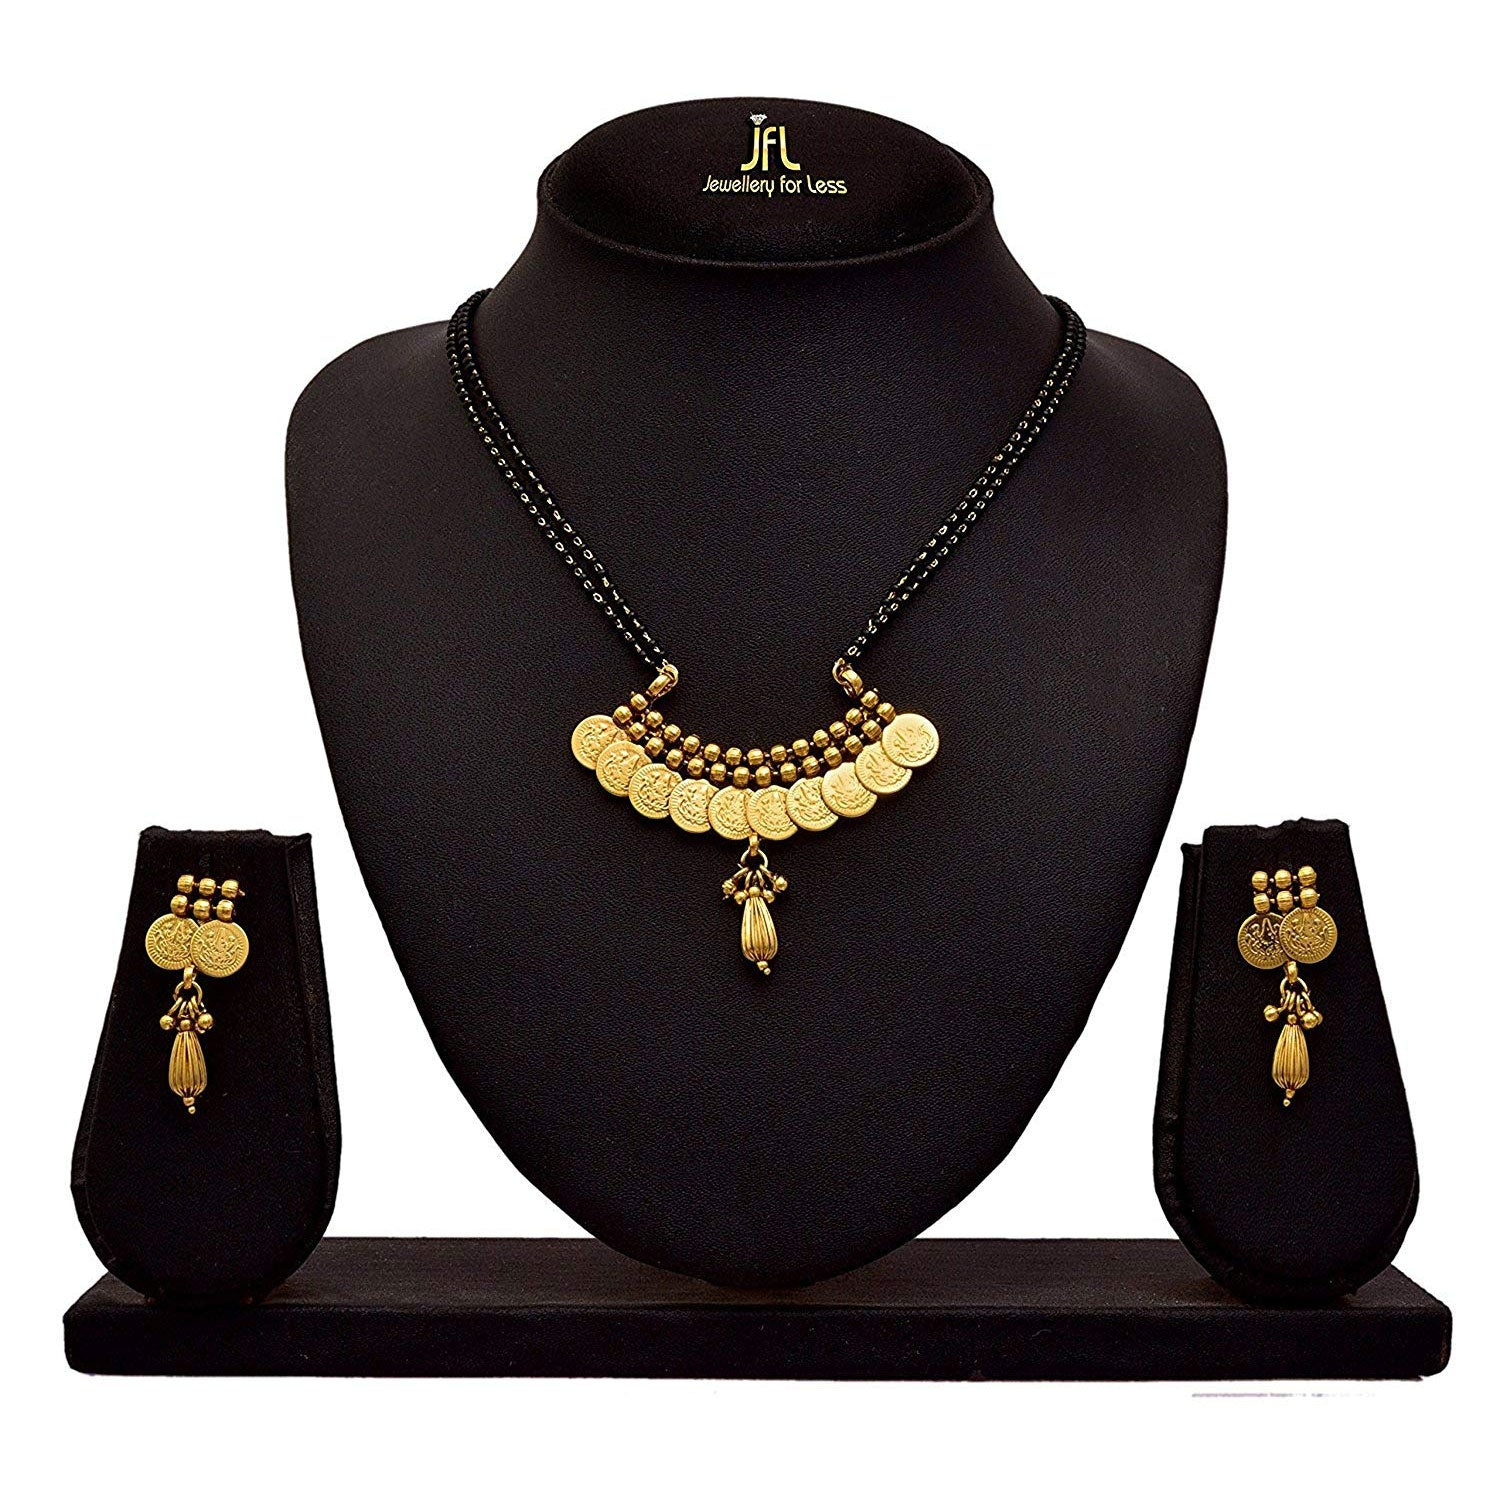 JFL - Traditional Ethnic Temple Goddess Laxmi Coin One Gram Gold Plated Mangalsutra with Black Beaded Double Chain and Earrings for Women